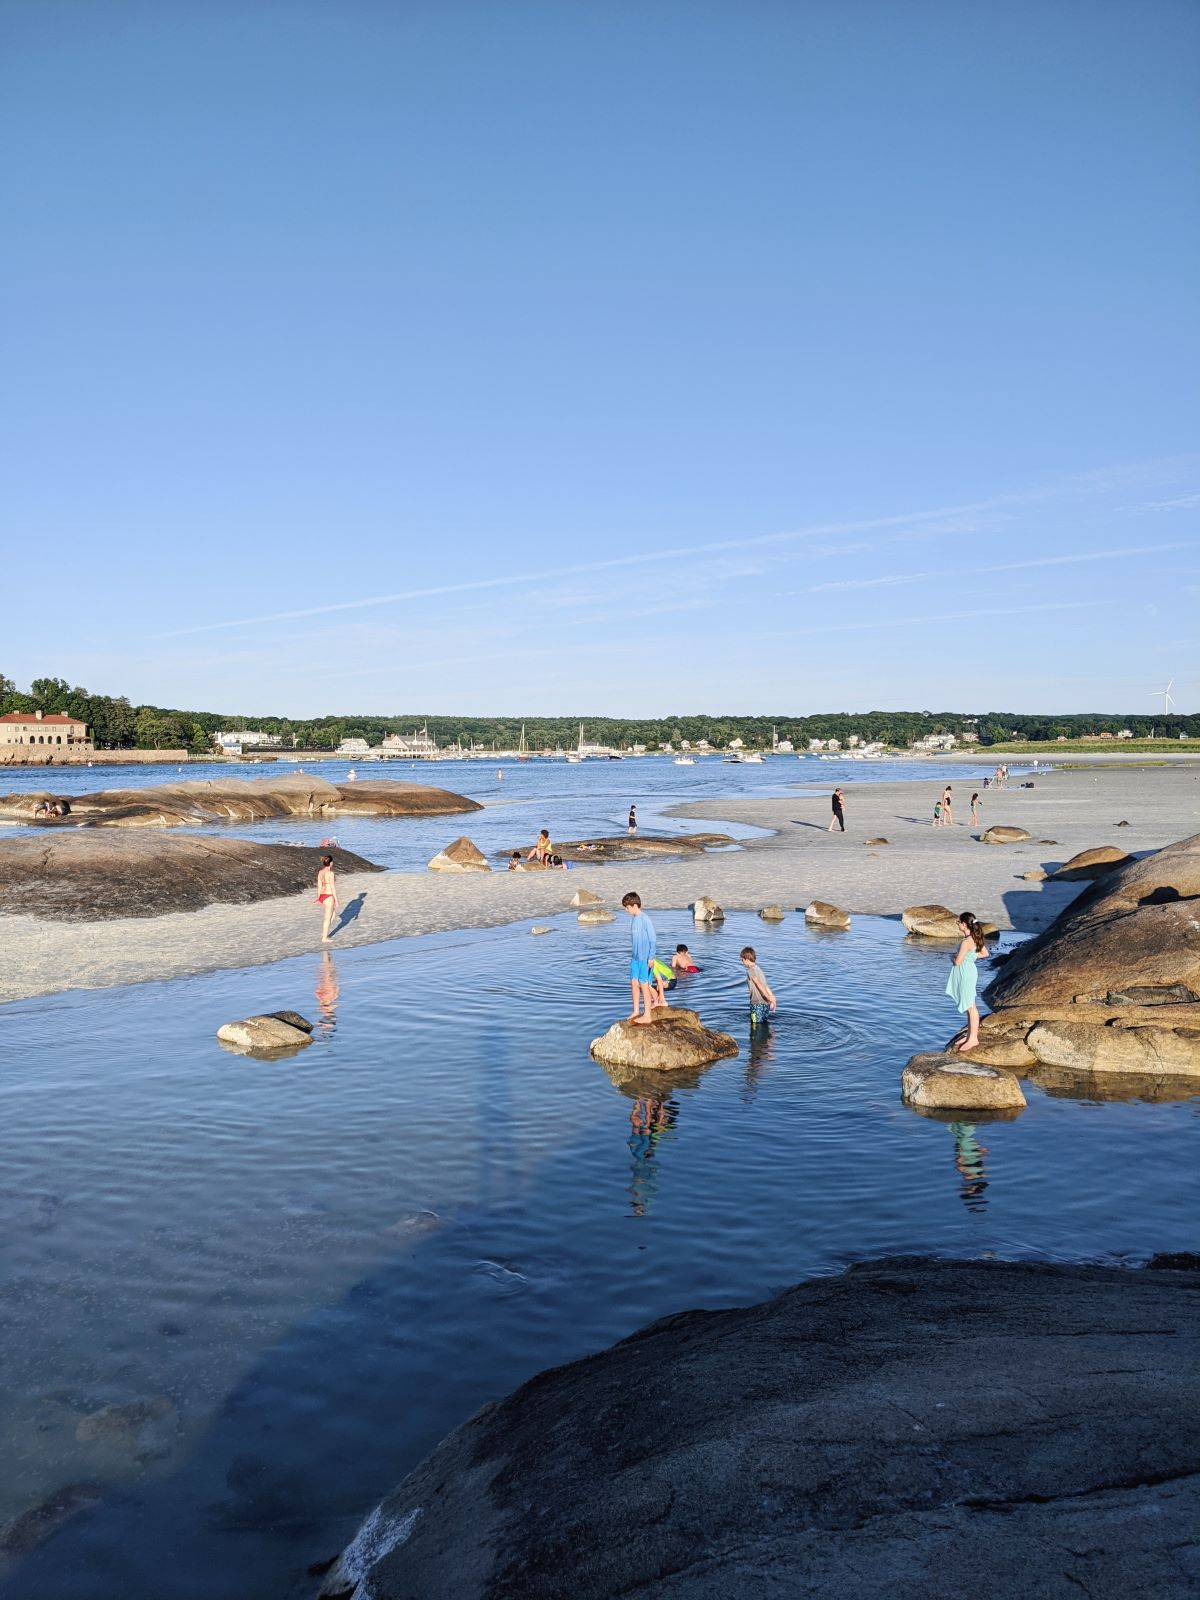 The exposed rocks of Wingaersheek Beach at low tide, with kids and adults wading in the water